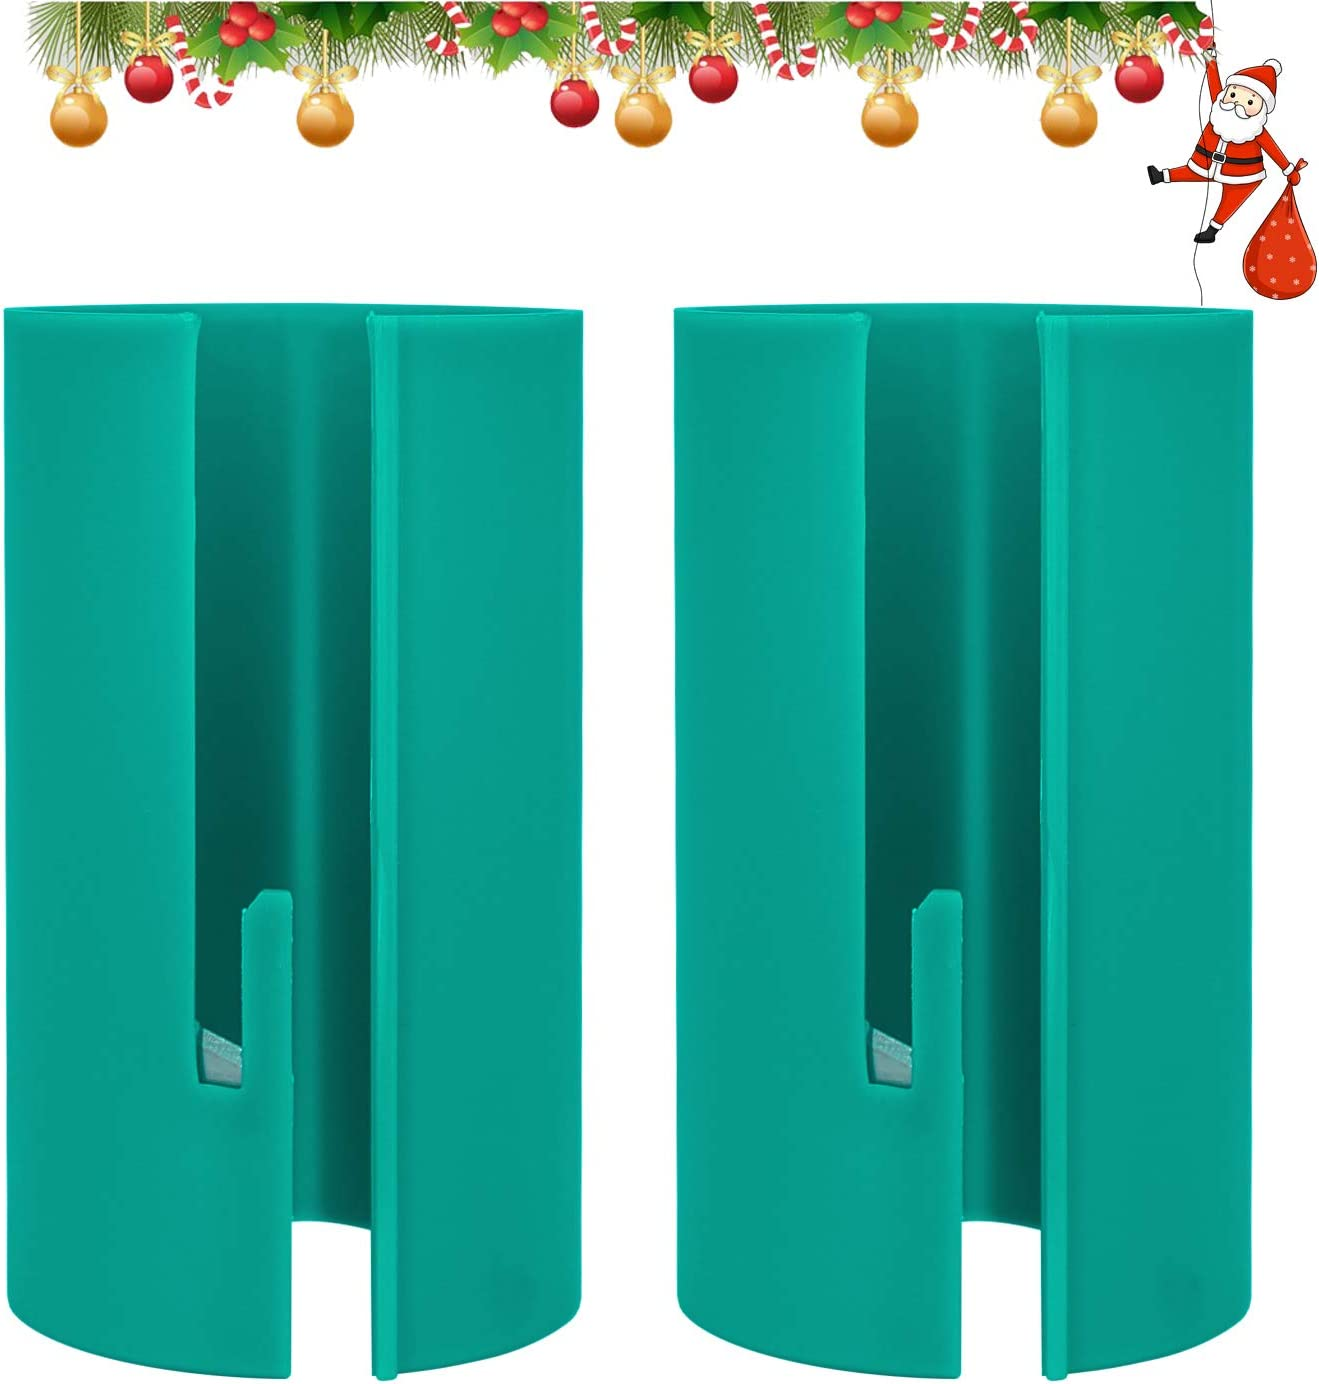 Wrapping Paper Cutter, Gift Wrapping Paper Cutter/Gift Wrapping Paper Cutting Tool/Christmas Gift/Birthday Gift/Green(2 Pack)